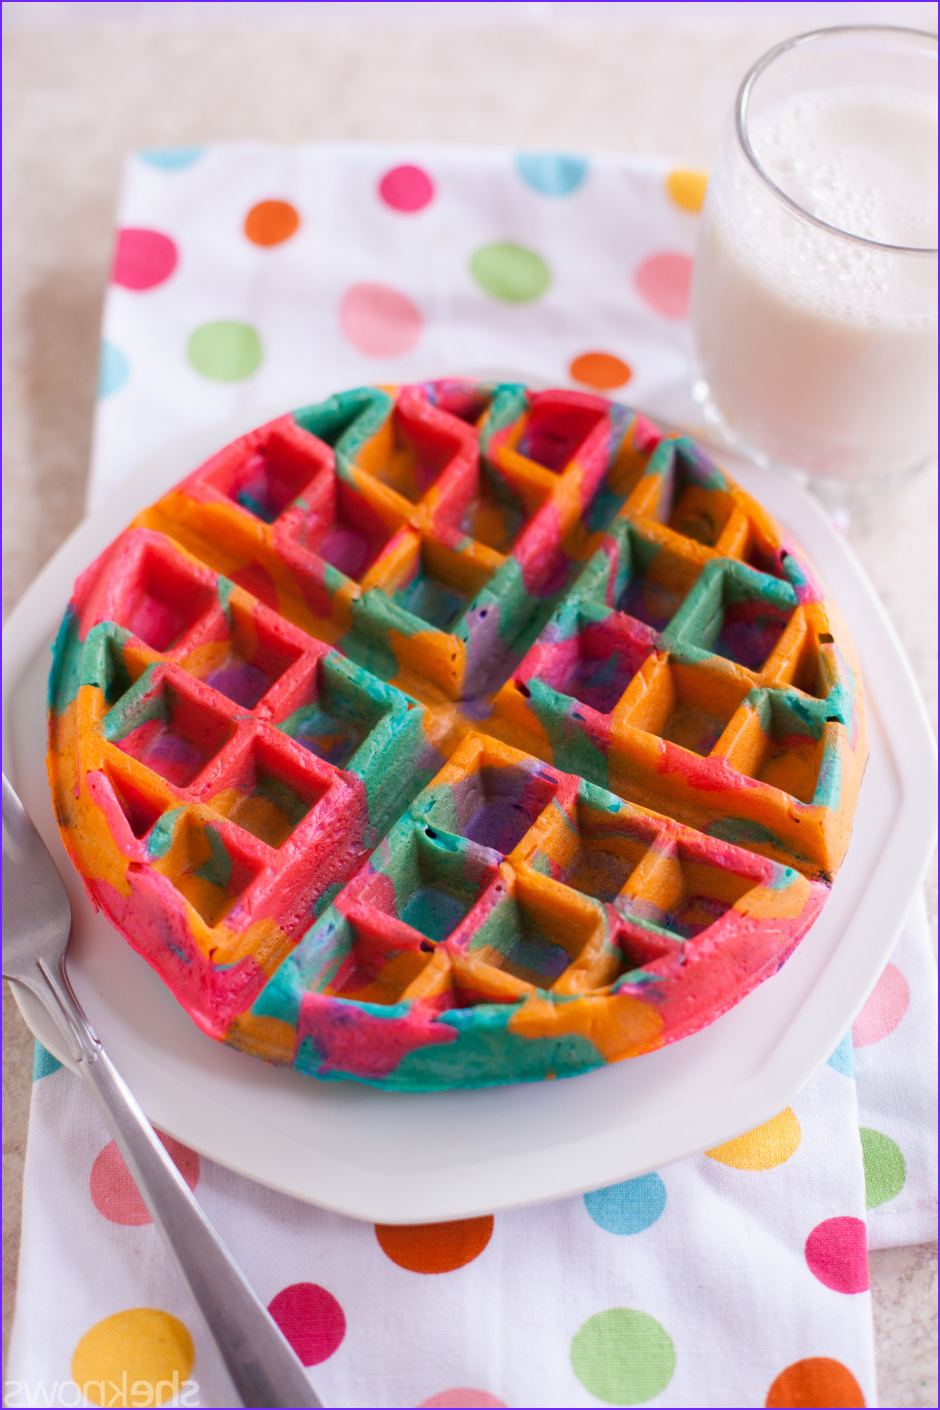 Can You Tie Dye with Food Coloring New Photos these Simple Diy Colorful Tie Dye Waffles Will Make Your